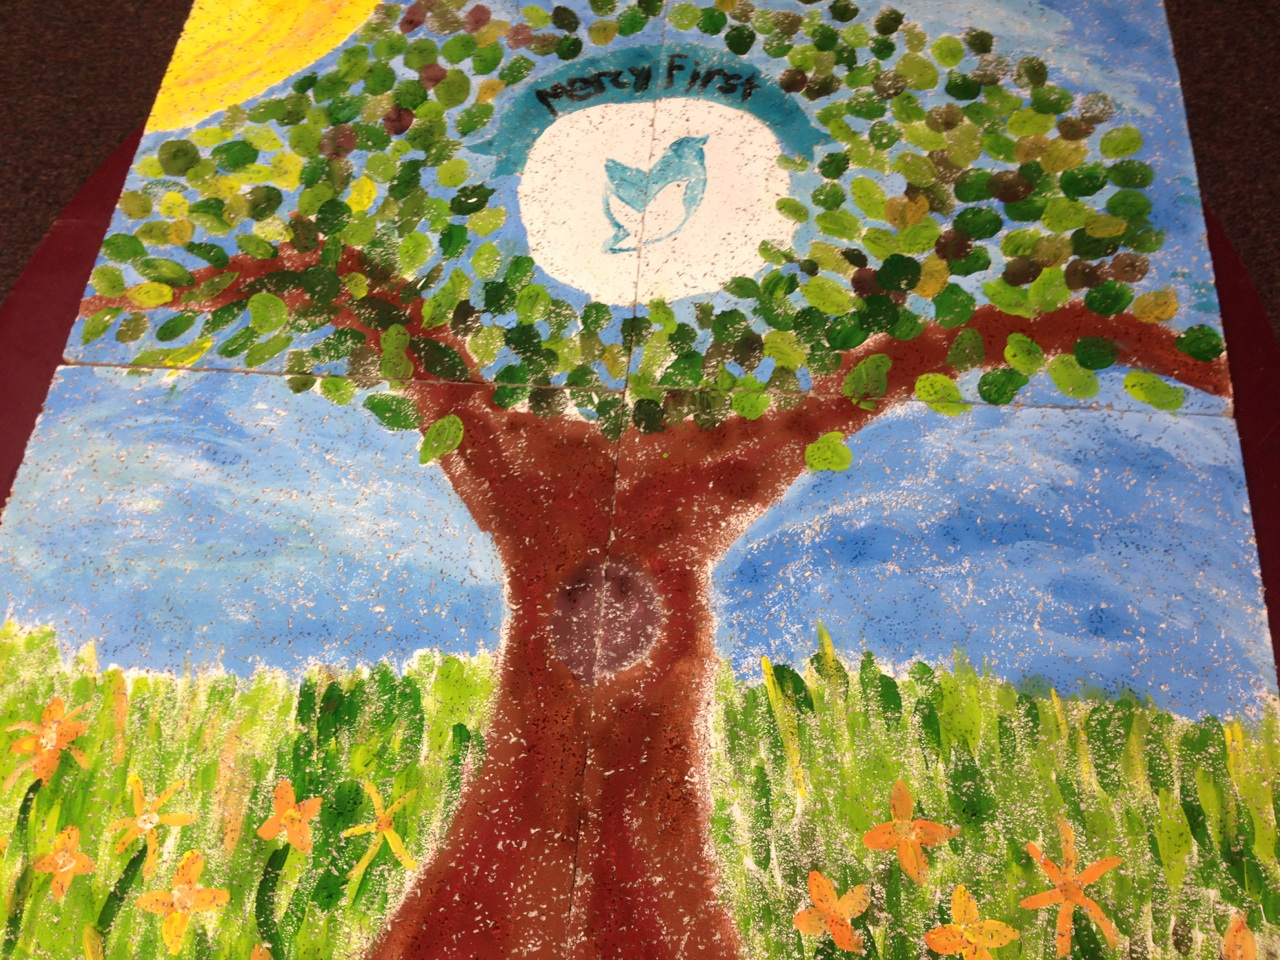 Painting of a tree with MercyFirst's logo, two birds